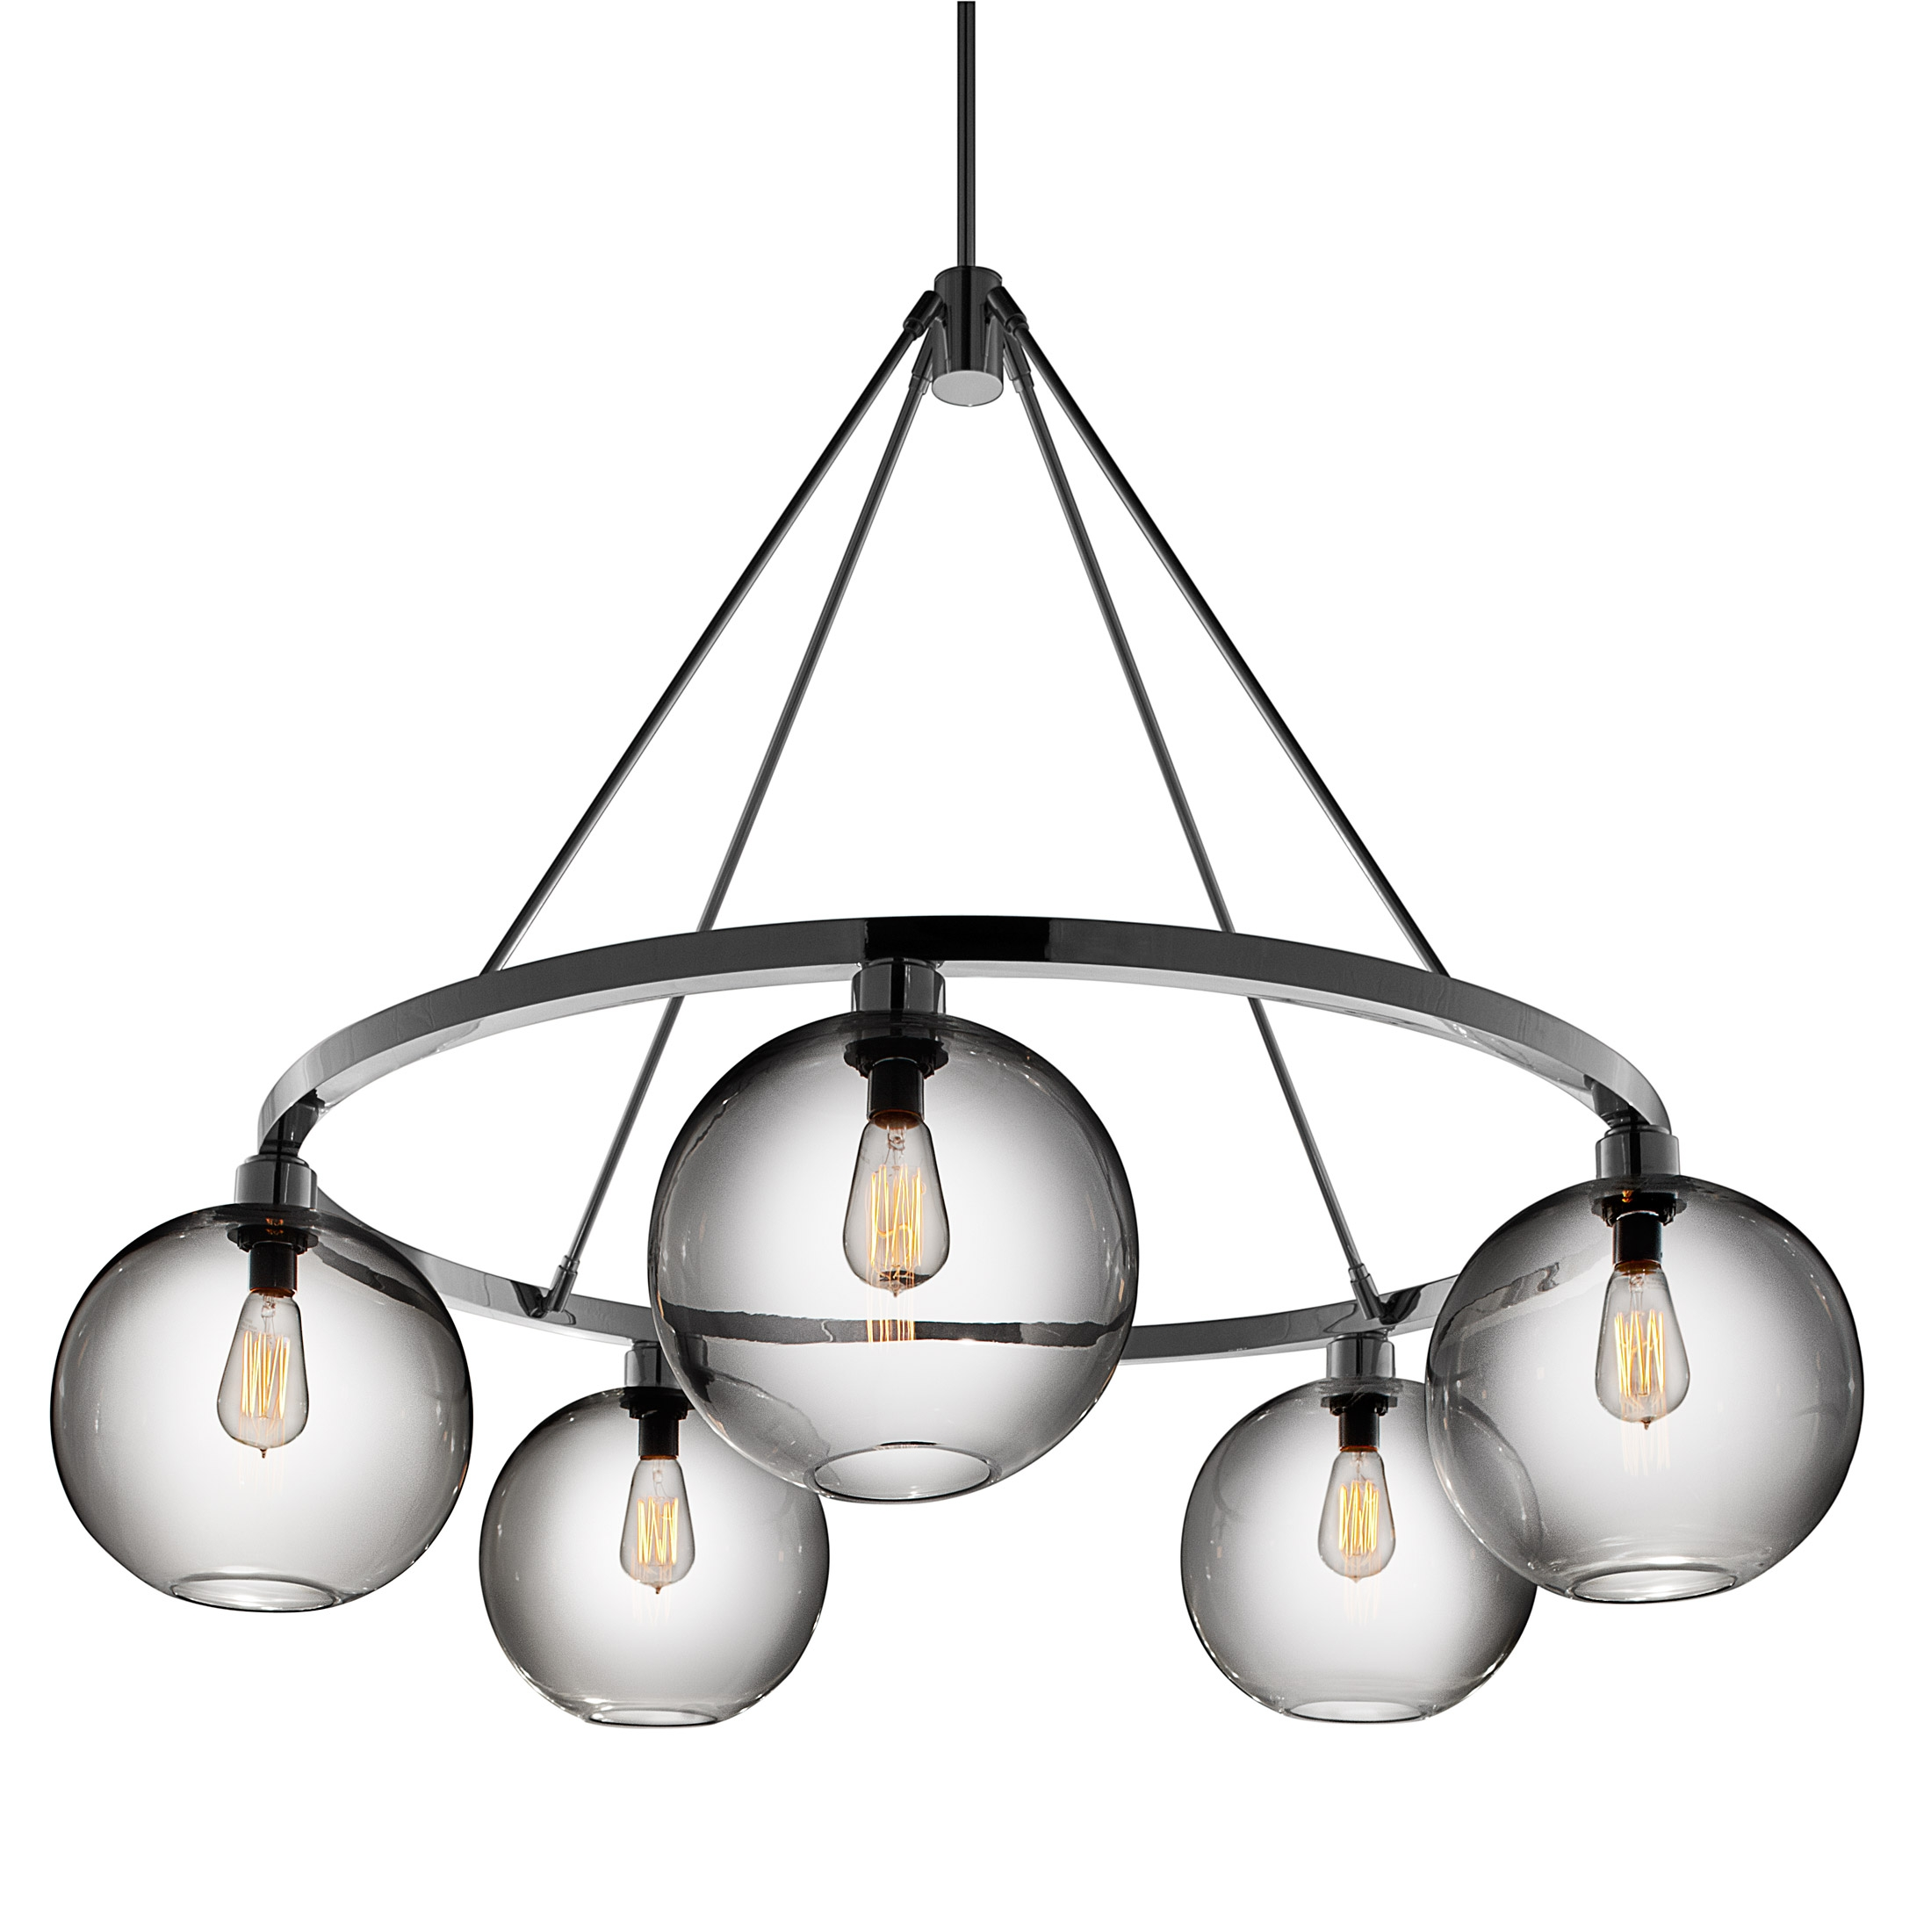 53 Modern Chandelier Lighting Chromecrystalmetal Bubble Shade For Contemporary Modern Chandelier (Image 2 of 15)